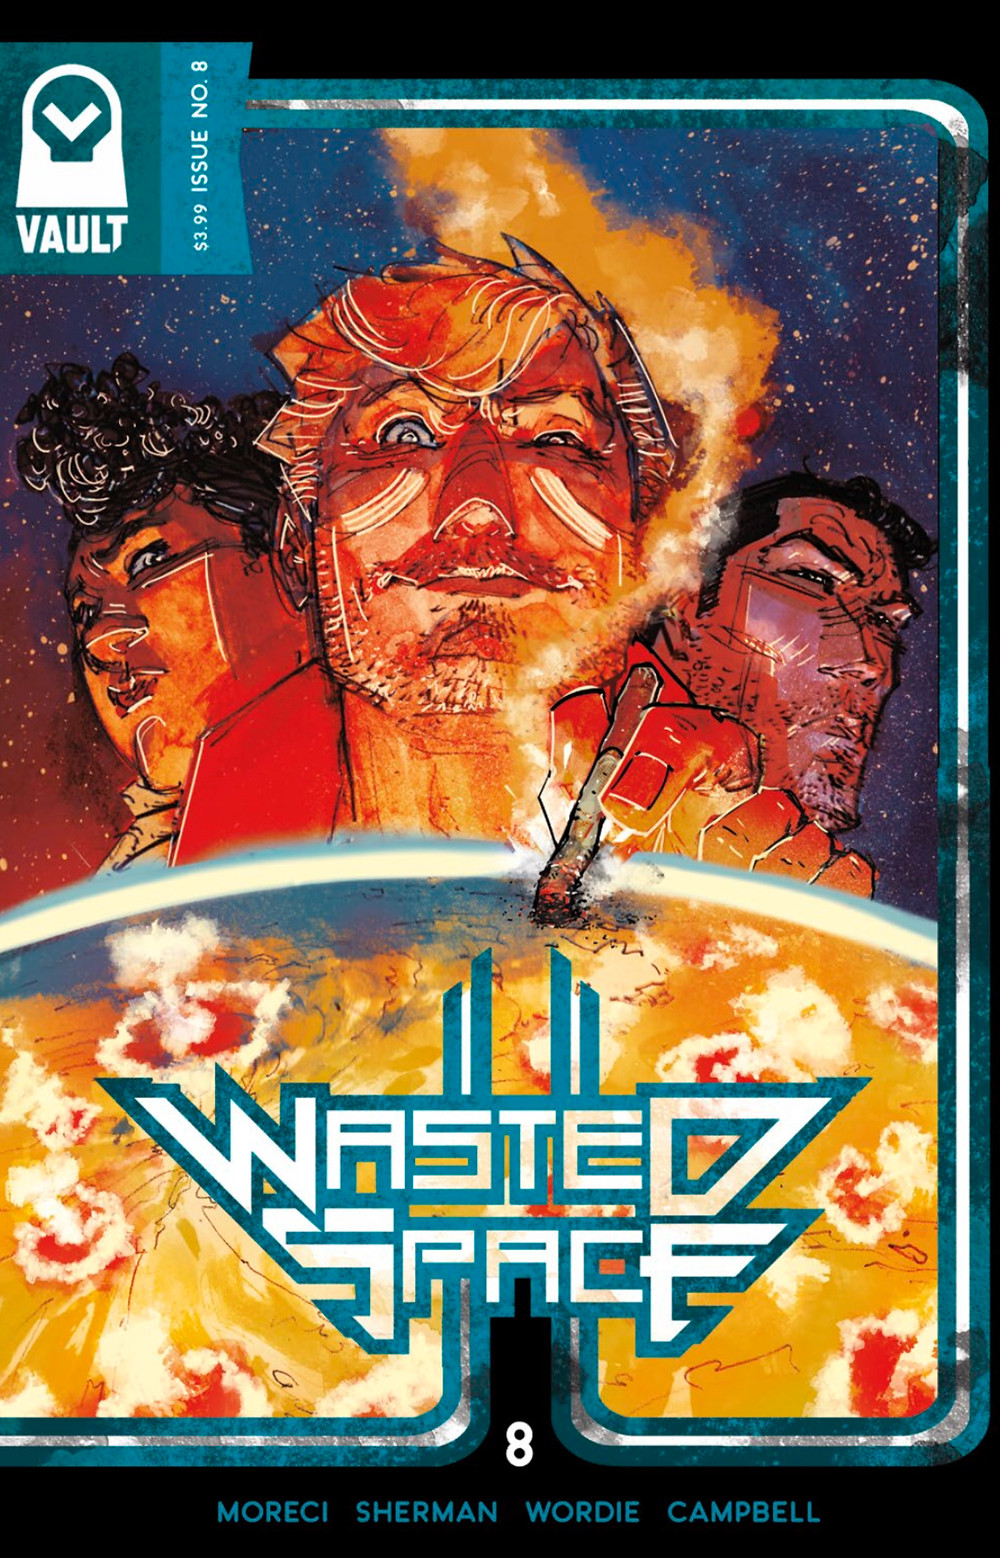 Wasted Space, issue #8, cover, Vault Comics, Moreci/Sherman